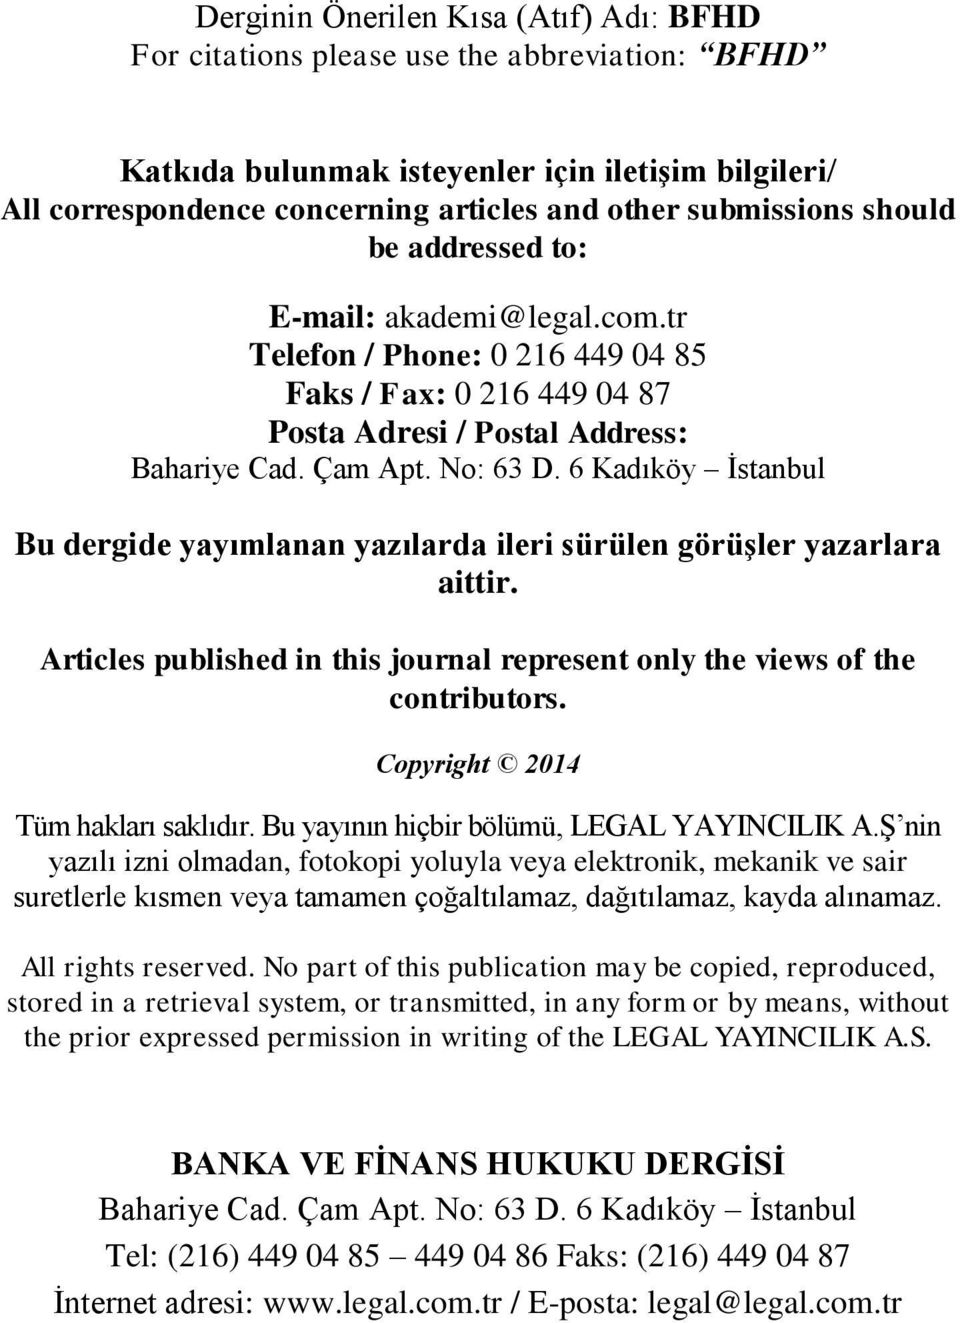 6 Kadıköy Ġstanbul Bu dergide yayımlanan yazılarda ileri sürülen görüşler yazarlara aittir. Articles published in this journal represent only the views of the contributors.